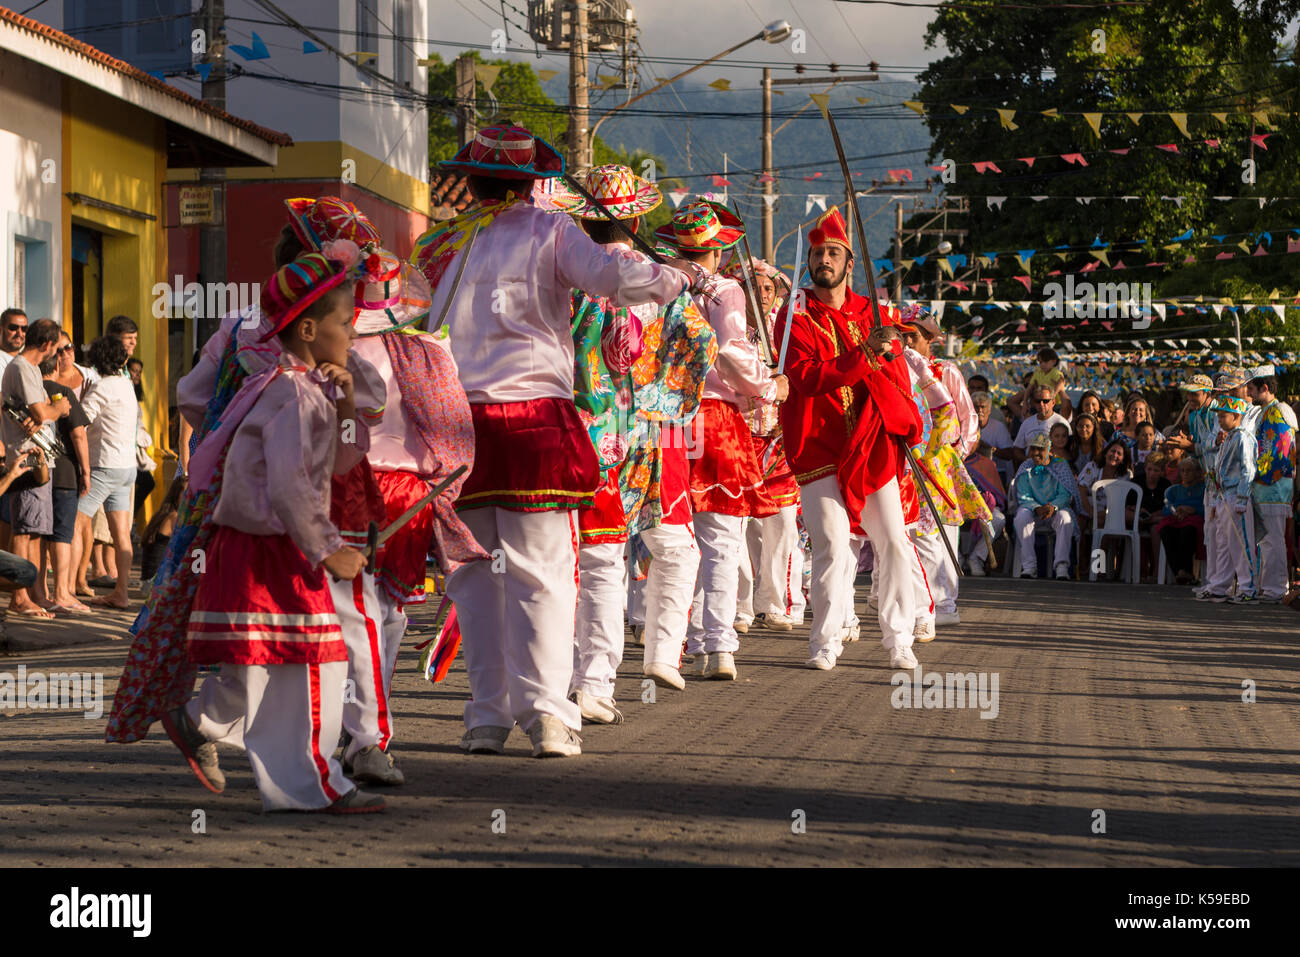 The religious festivity of Congada, from Ilhabela, SP, Brazil - Stock Image